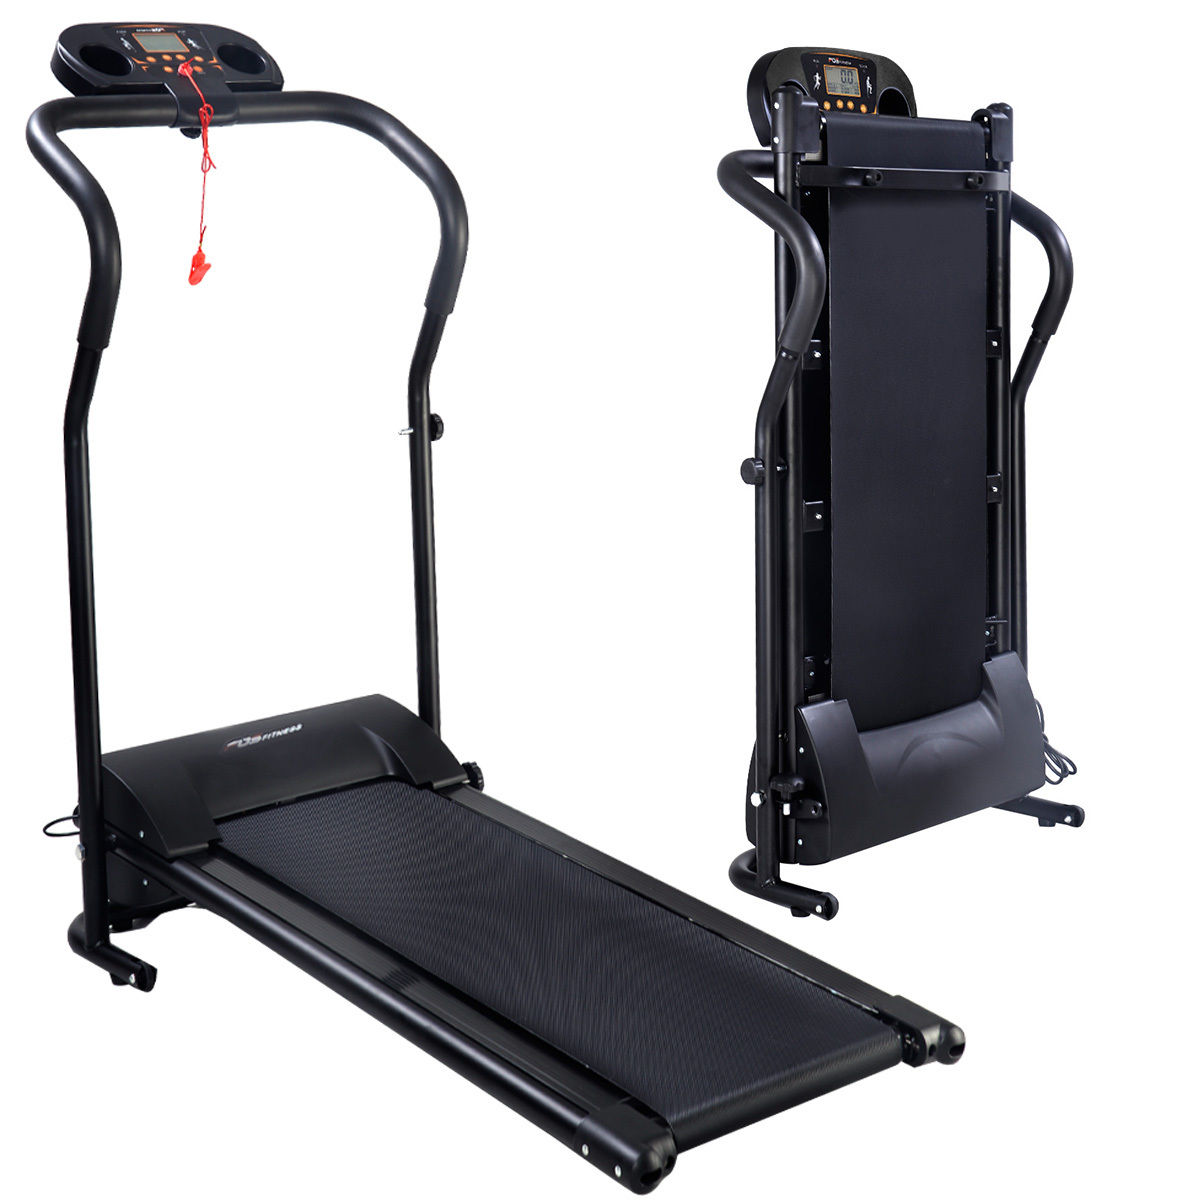 Costway Electric Treadmill 800W Folding Power Motorized Running Jogging Machine